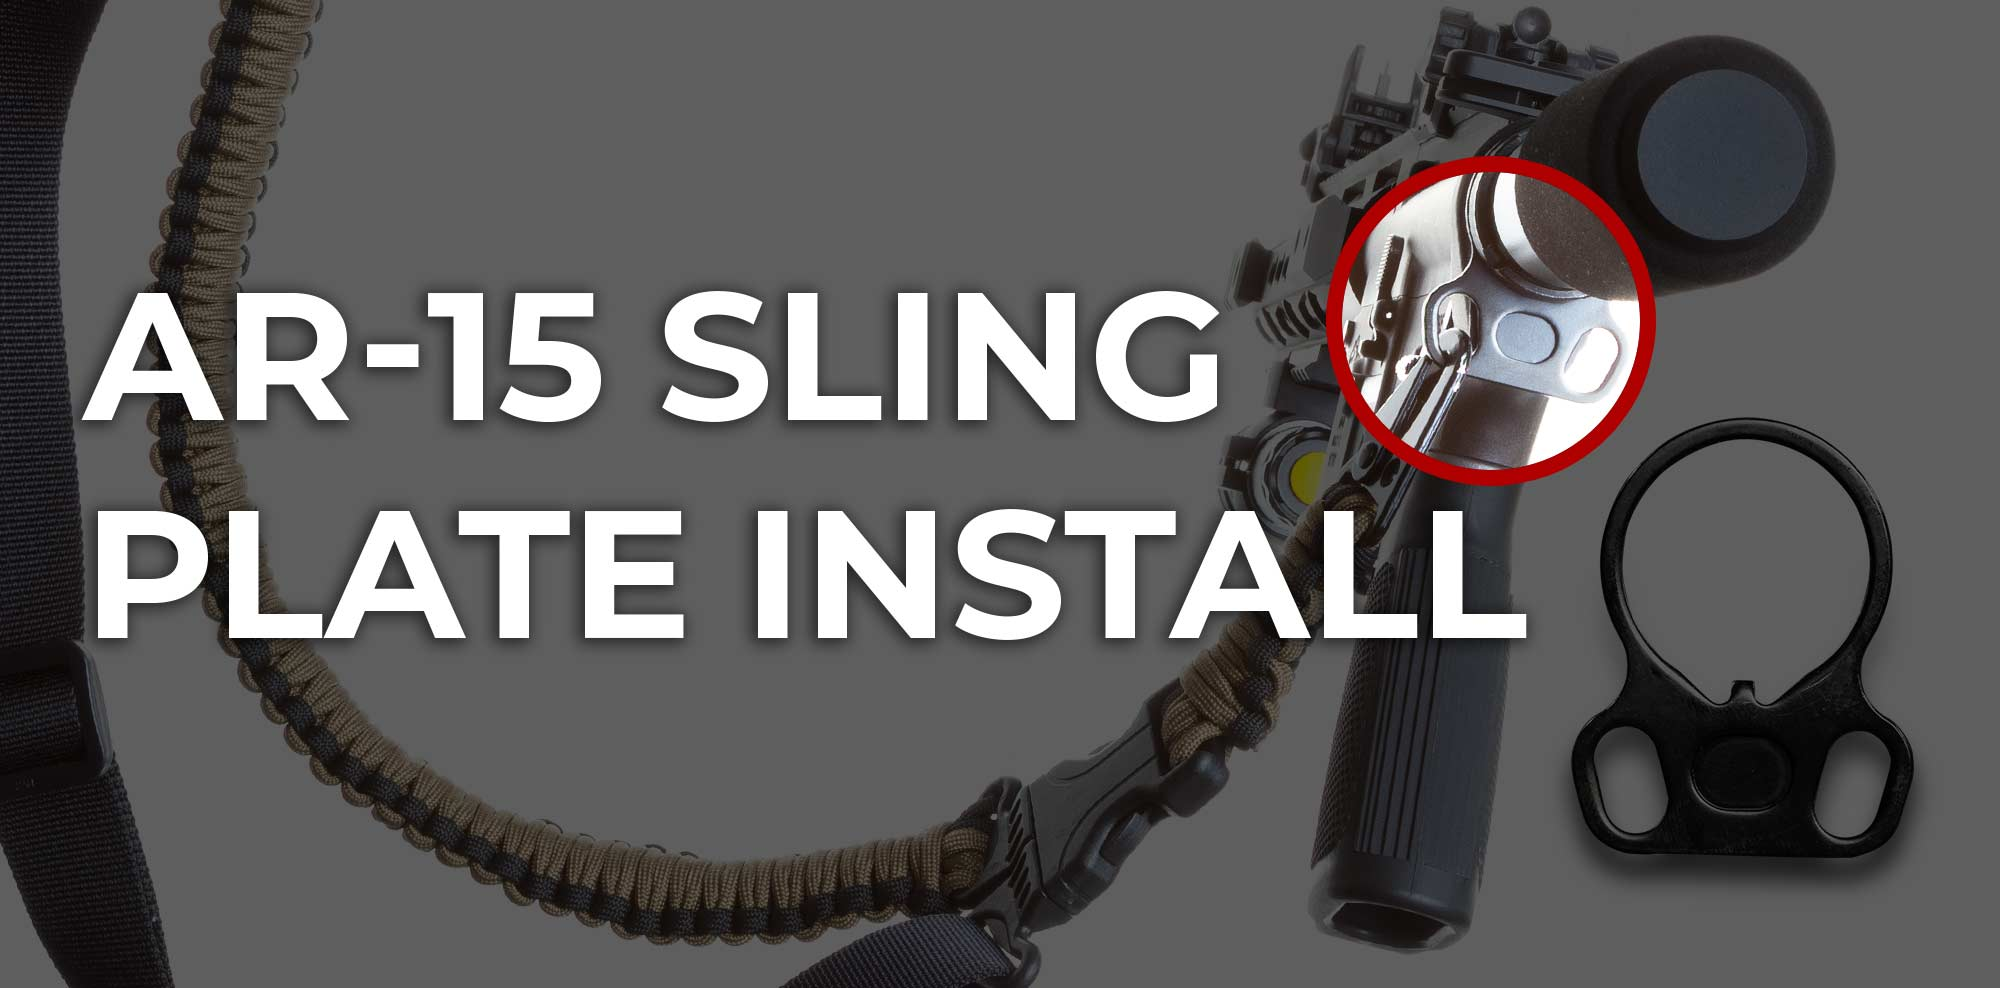 How to Install AR-15 Sling Adapter In 5 Minutes (VIDEO)